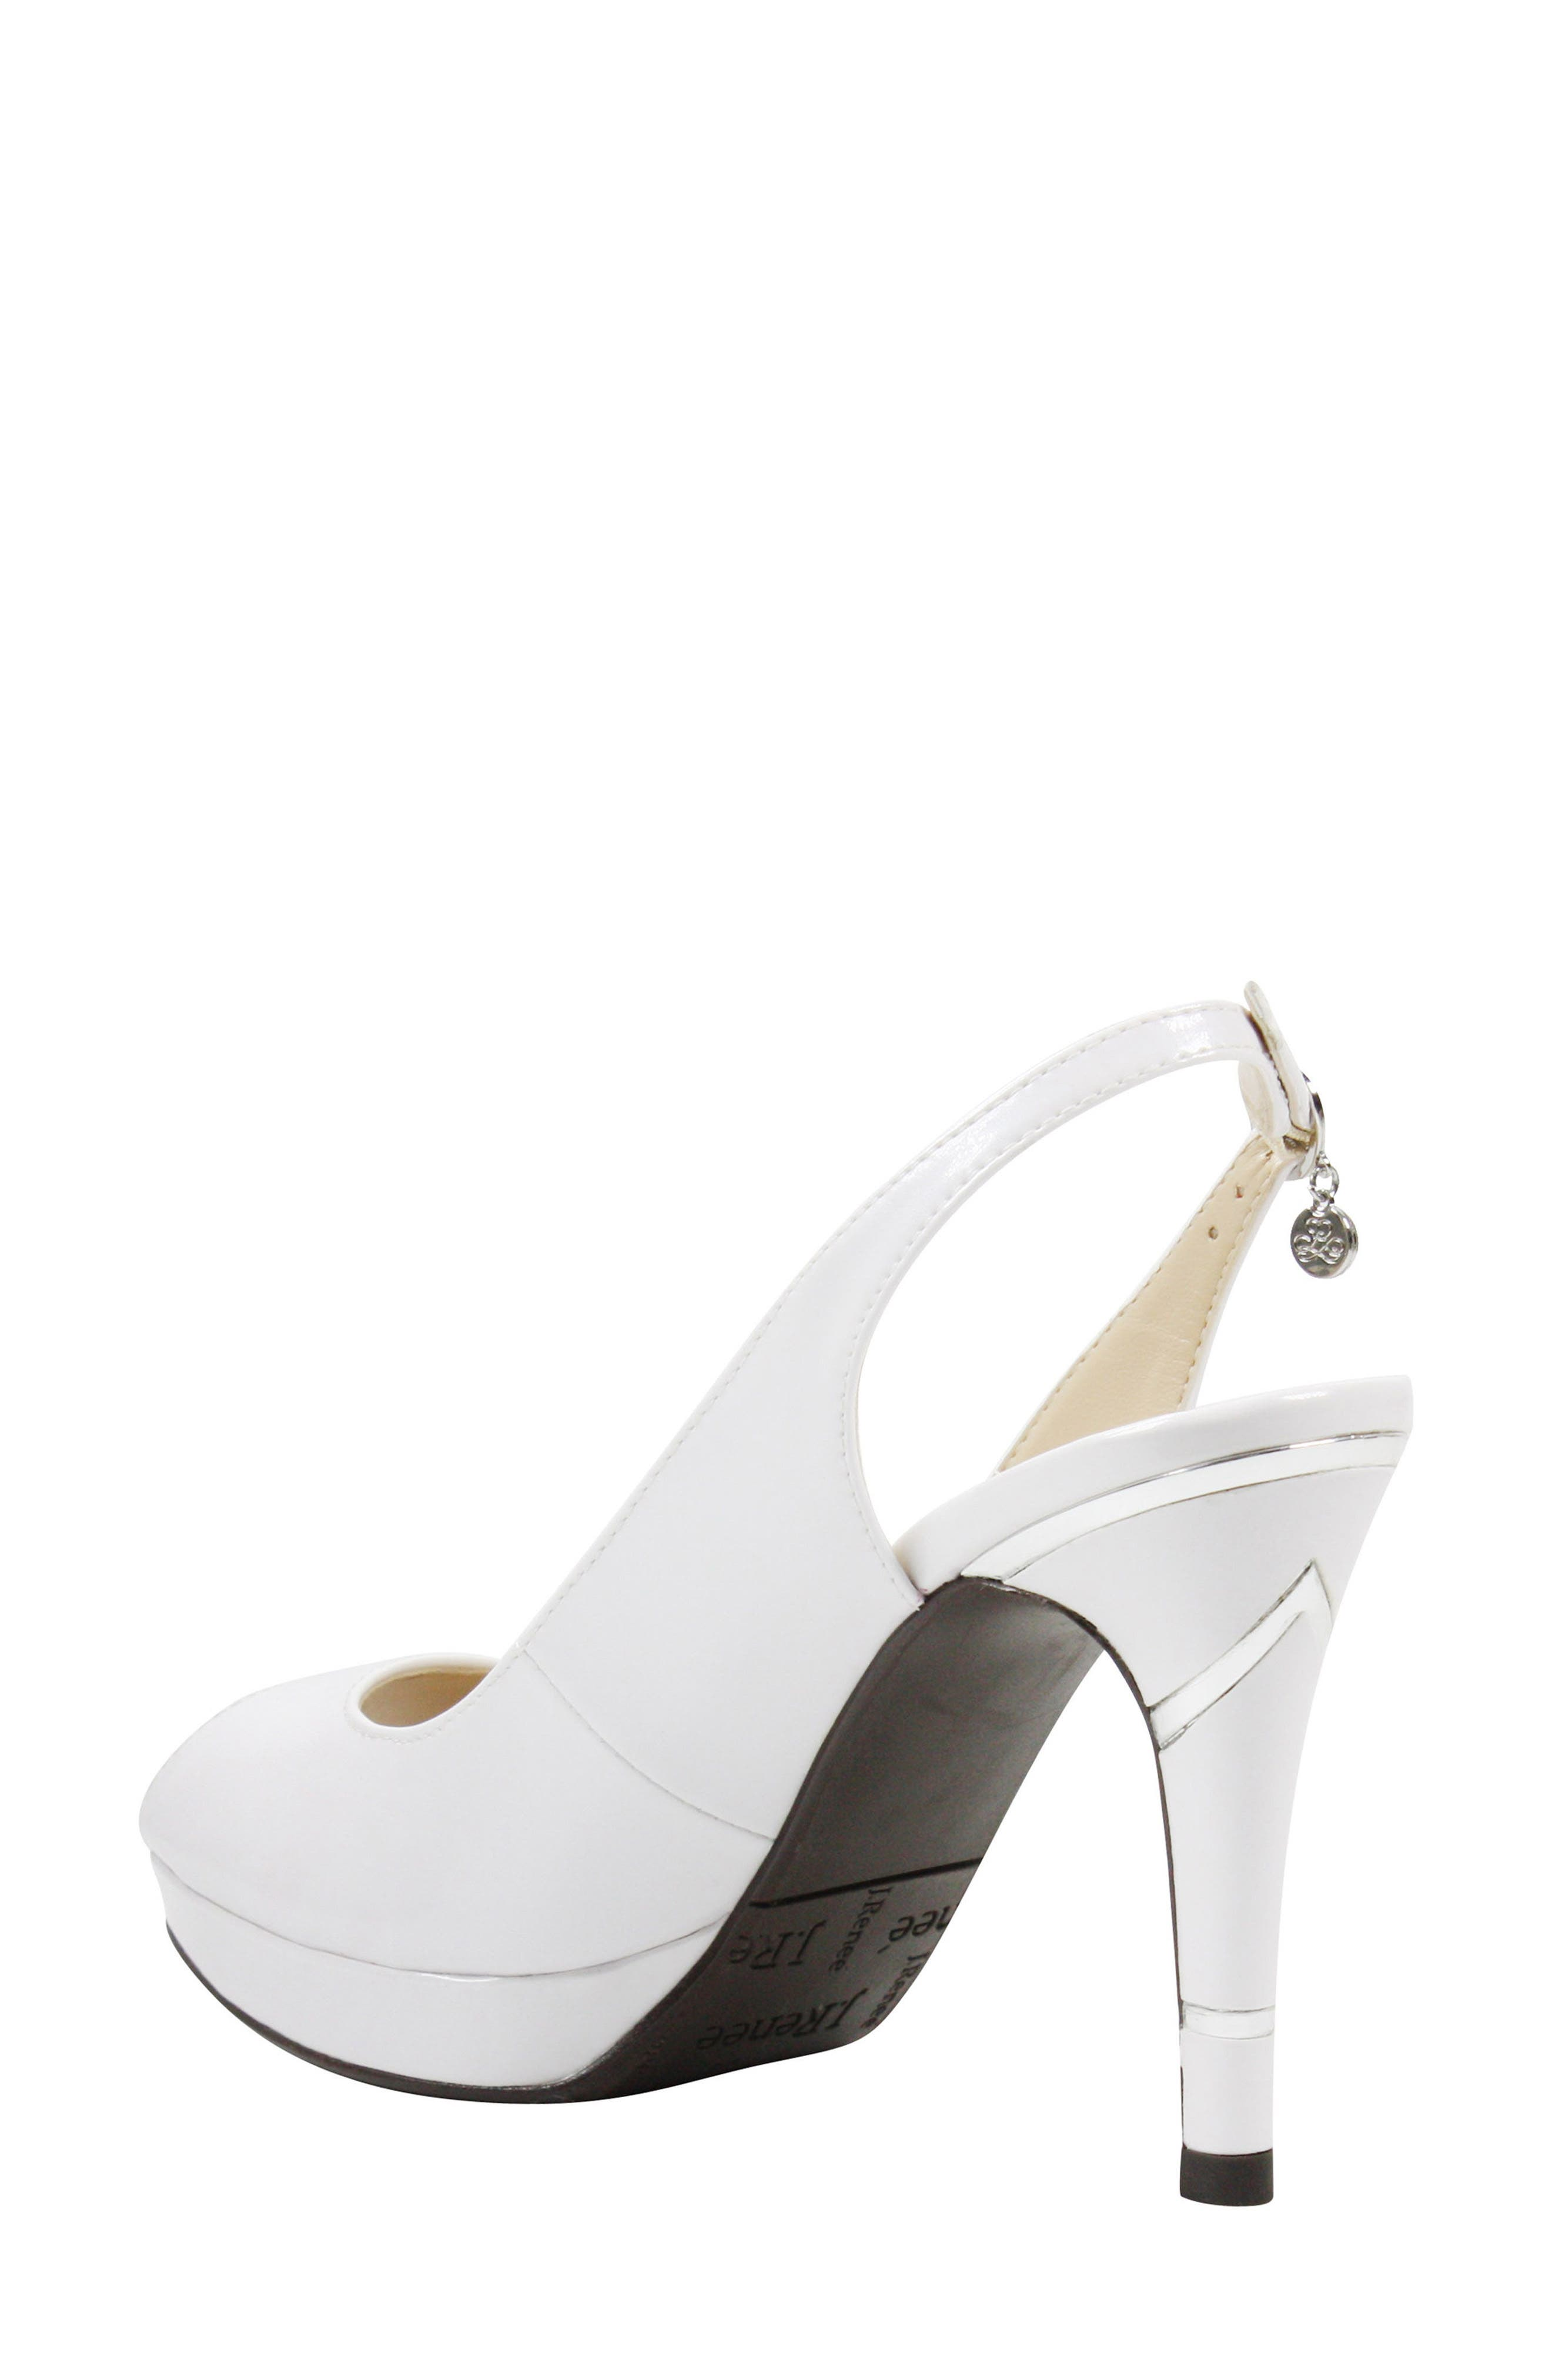 Onille Slingback Pump,                             Alternate thumbnail 2, color,                             Pearl White Faux Leather